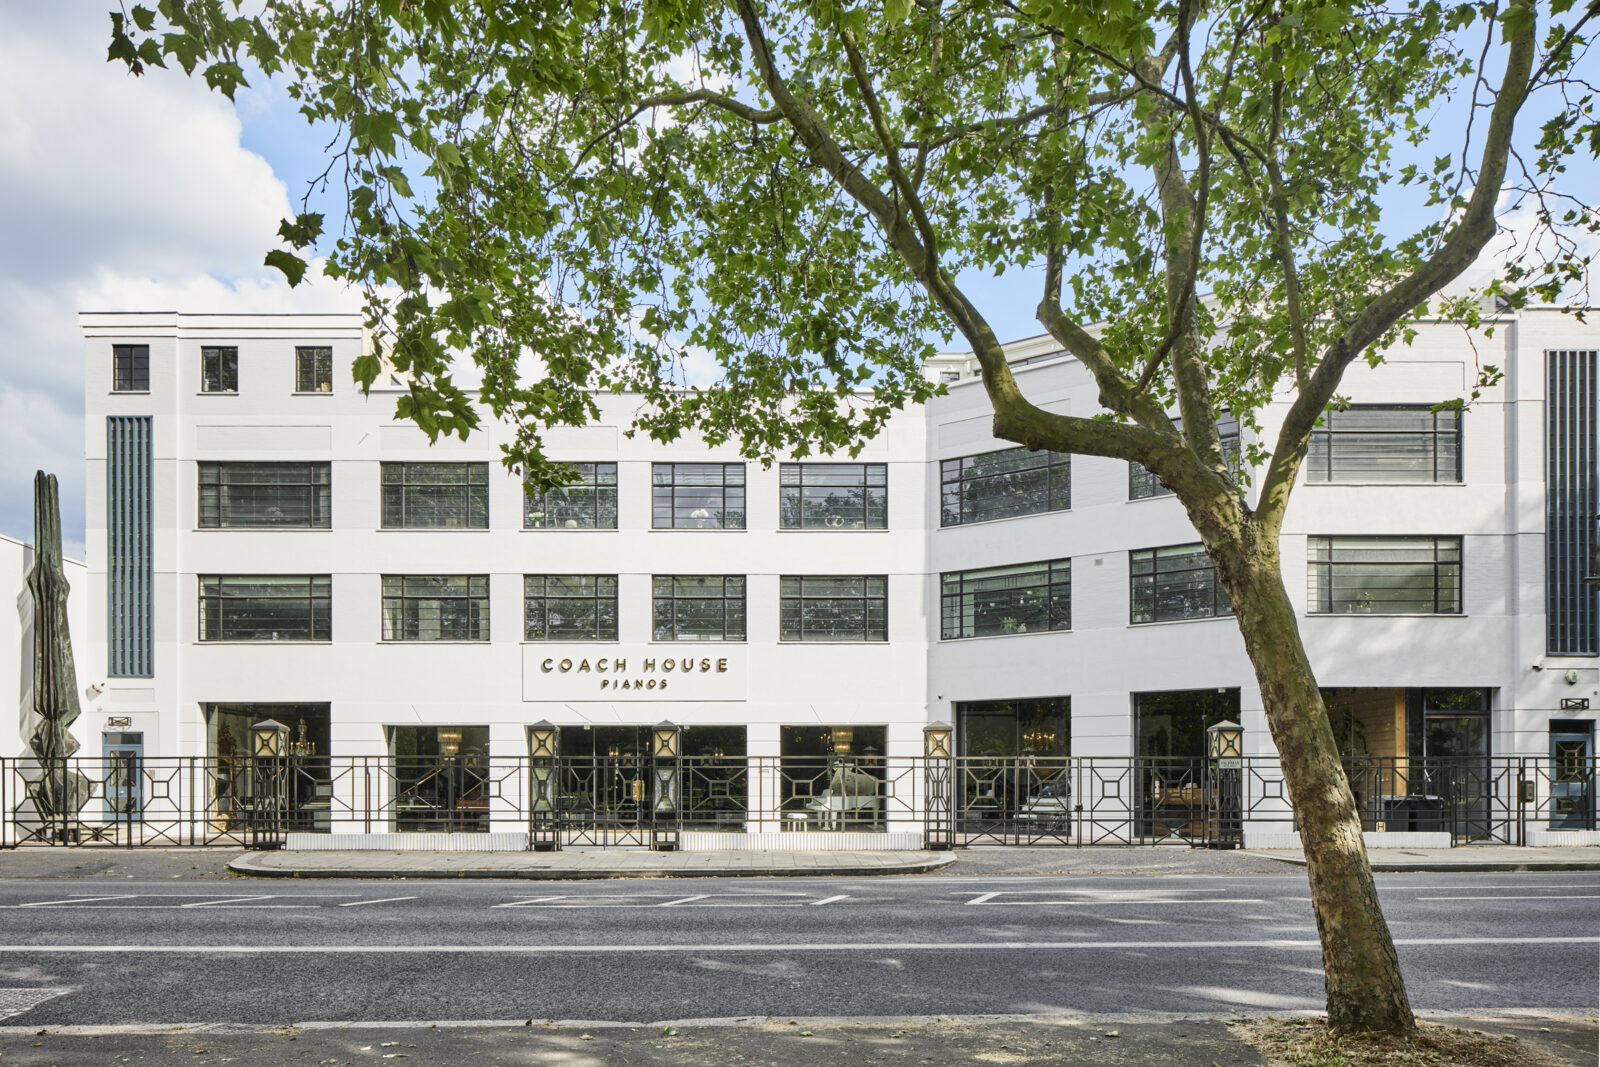 The Talisman House has been converted into ground floor showrooms and four lateral apartments